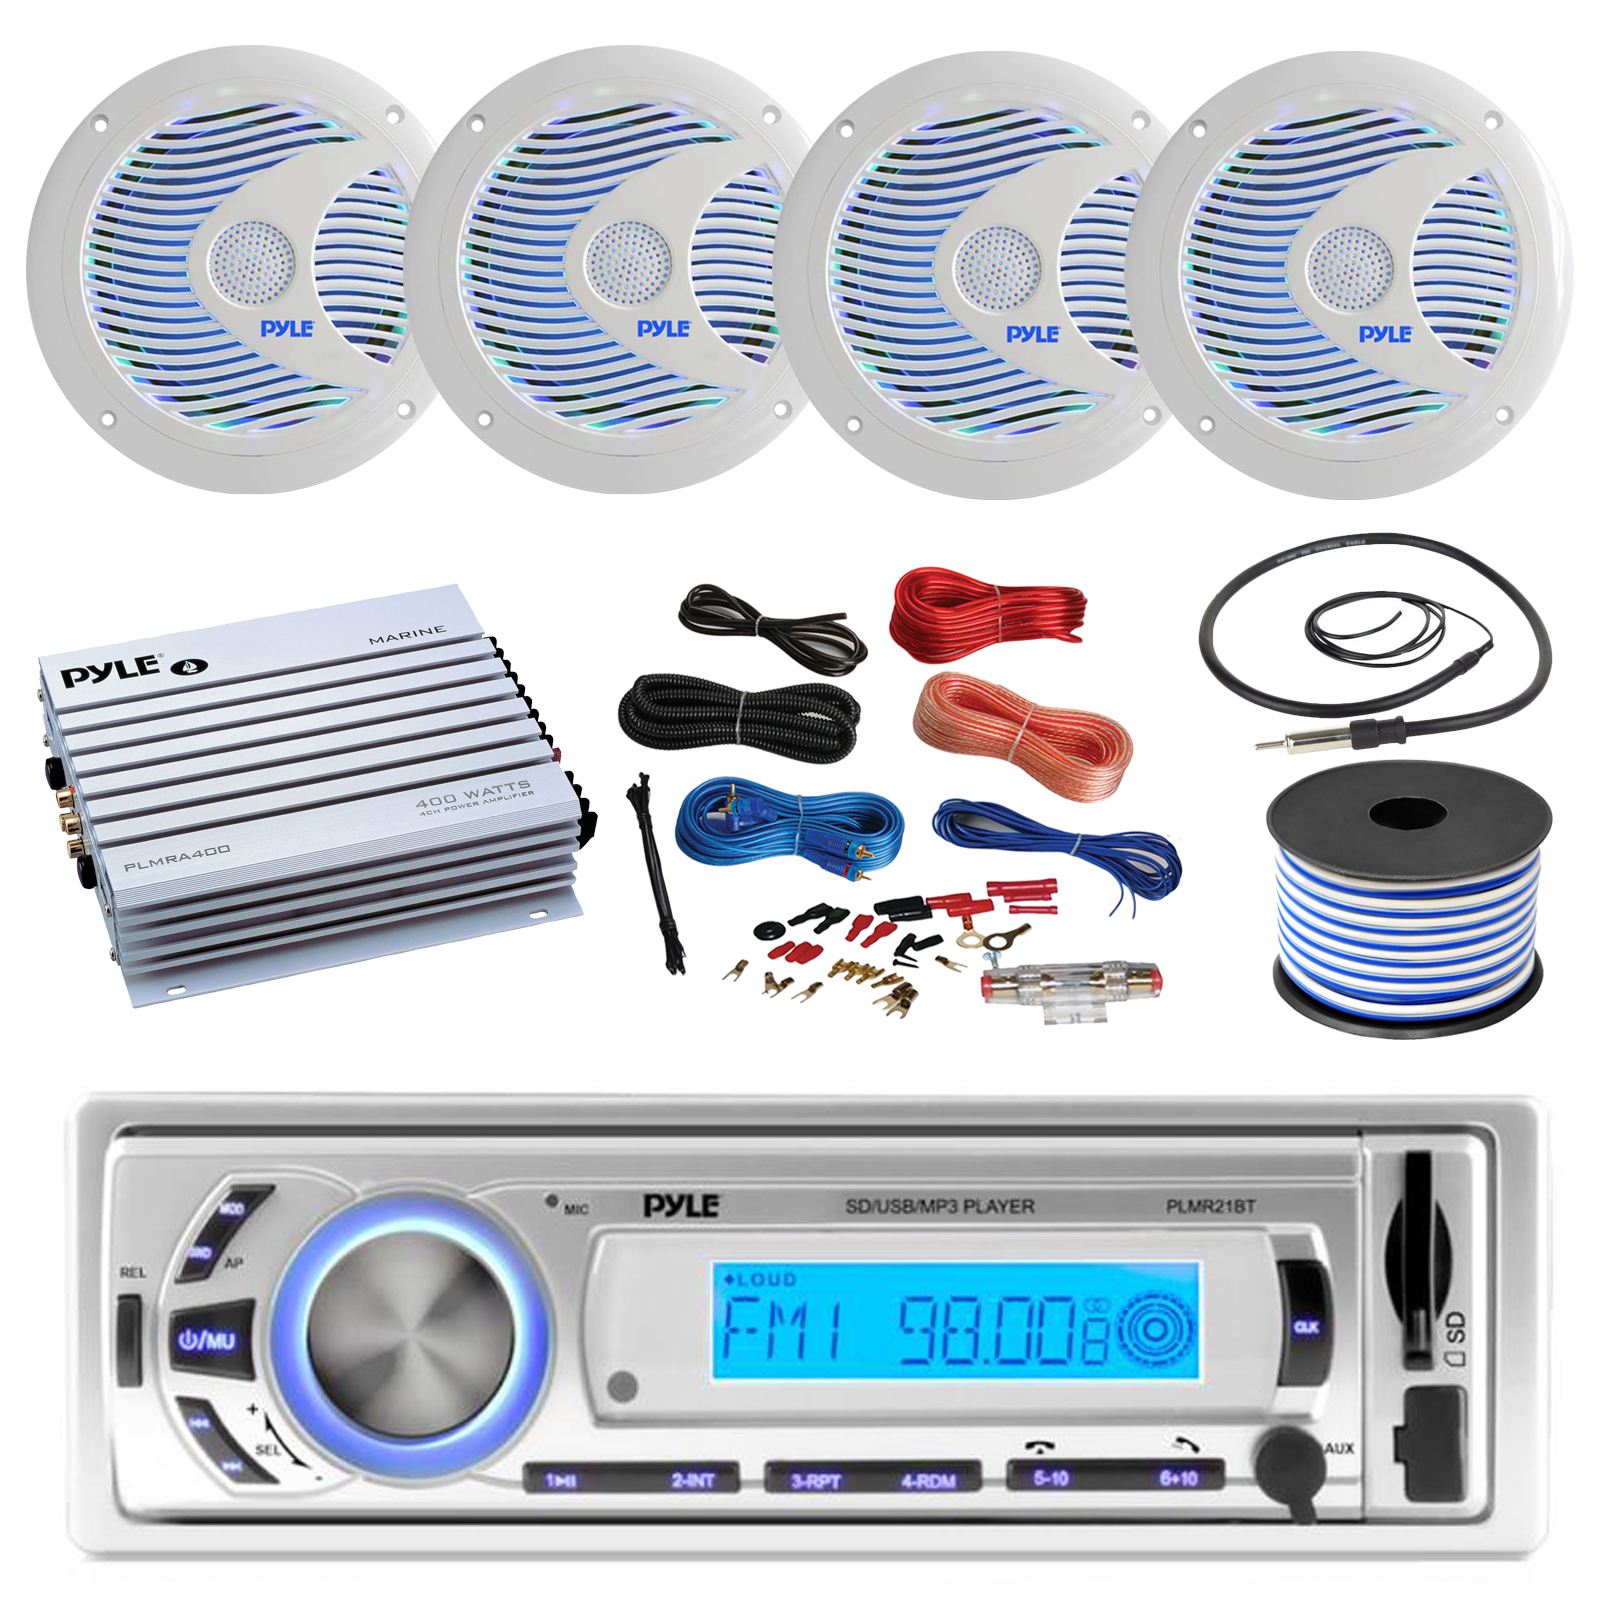 16-25' Bay Boat: Pyle Bluetooth Marine USB MP3 Stereo Receiver, 4 X Pyle 6.5'' Waterproof White Speakers w ... by Pyle